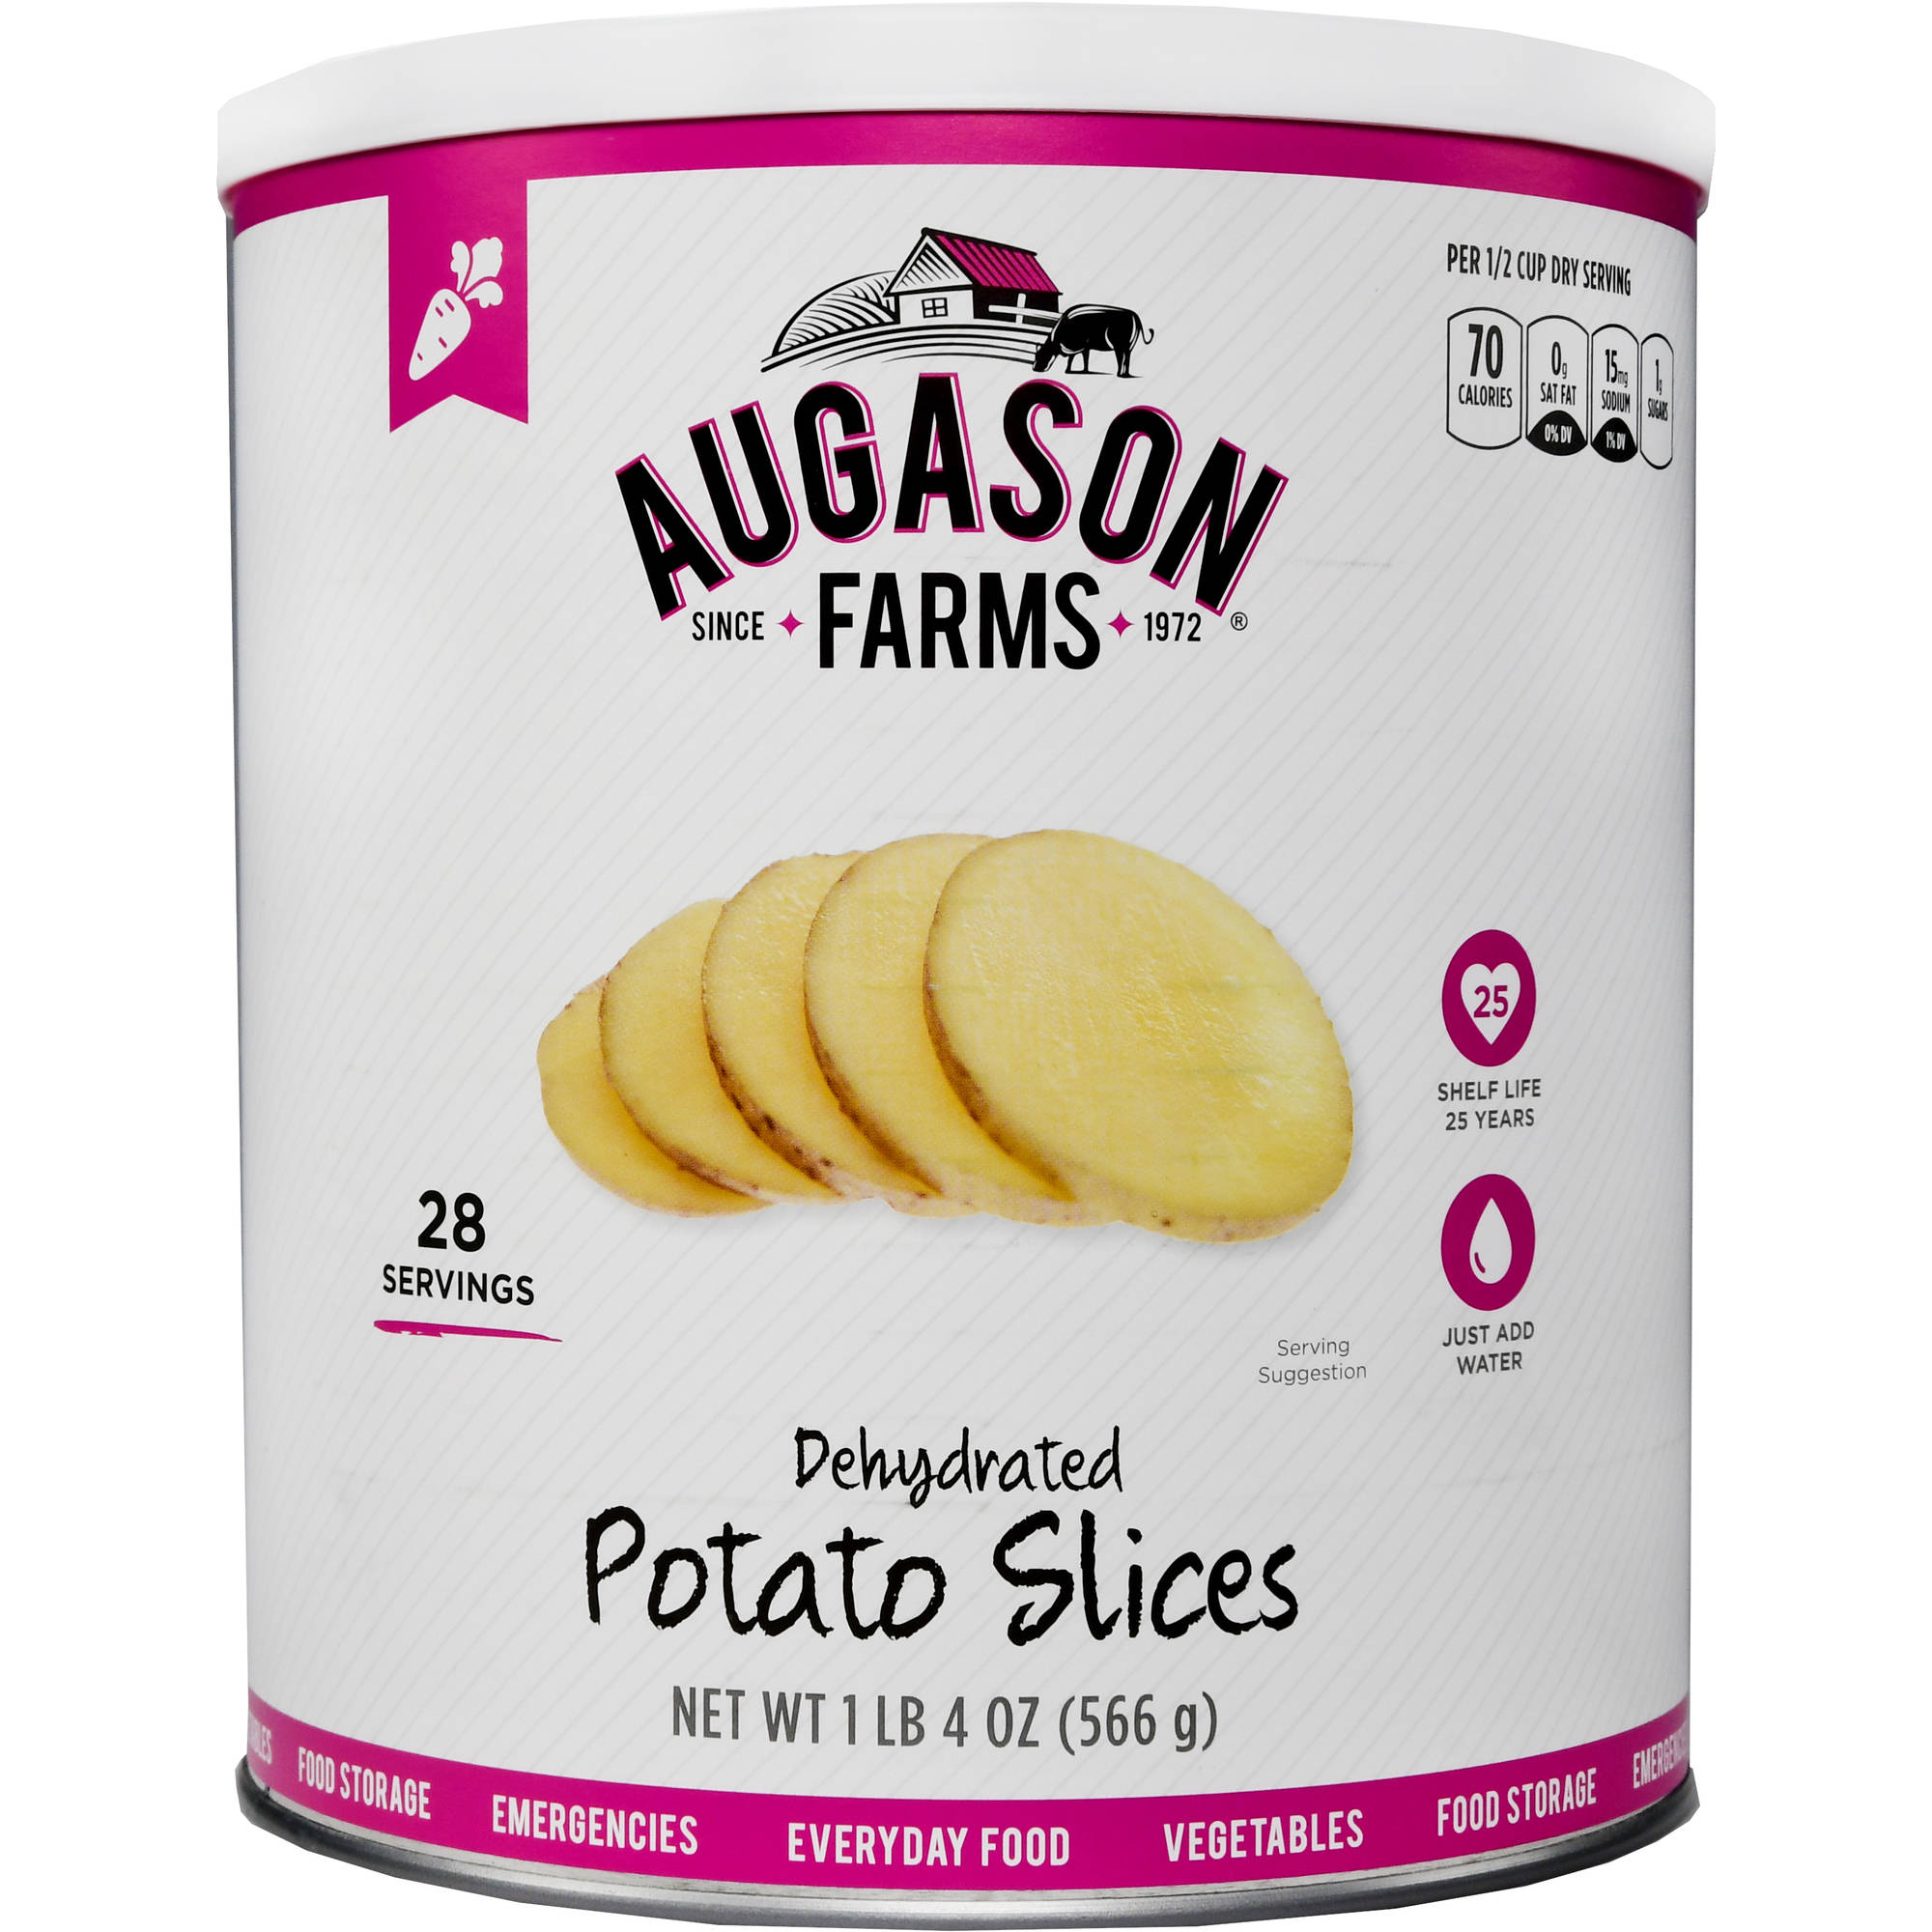 Augason Farms Emergency Food Dehydrated Potato Slices, 20 oz